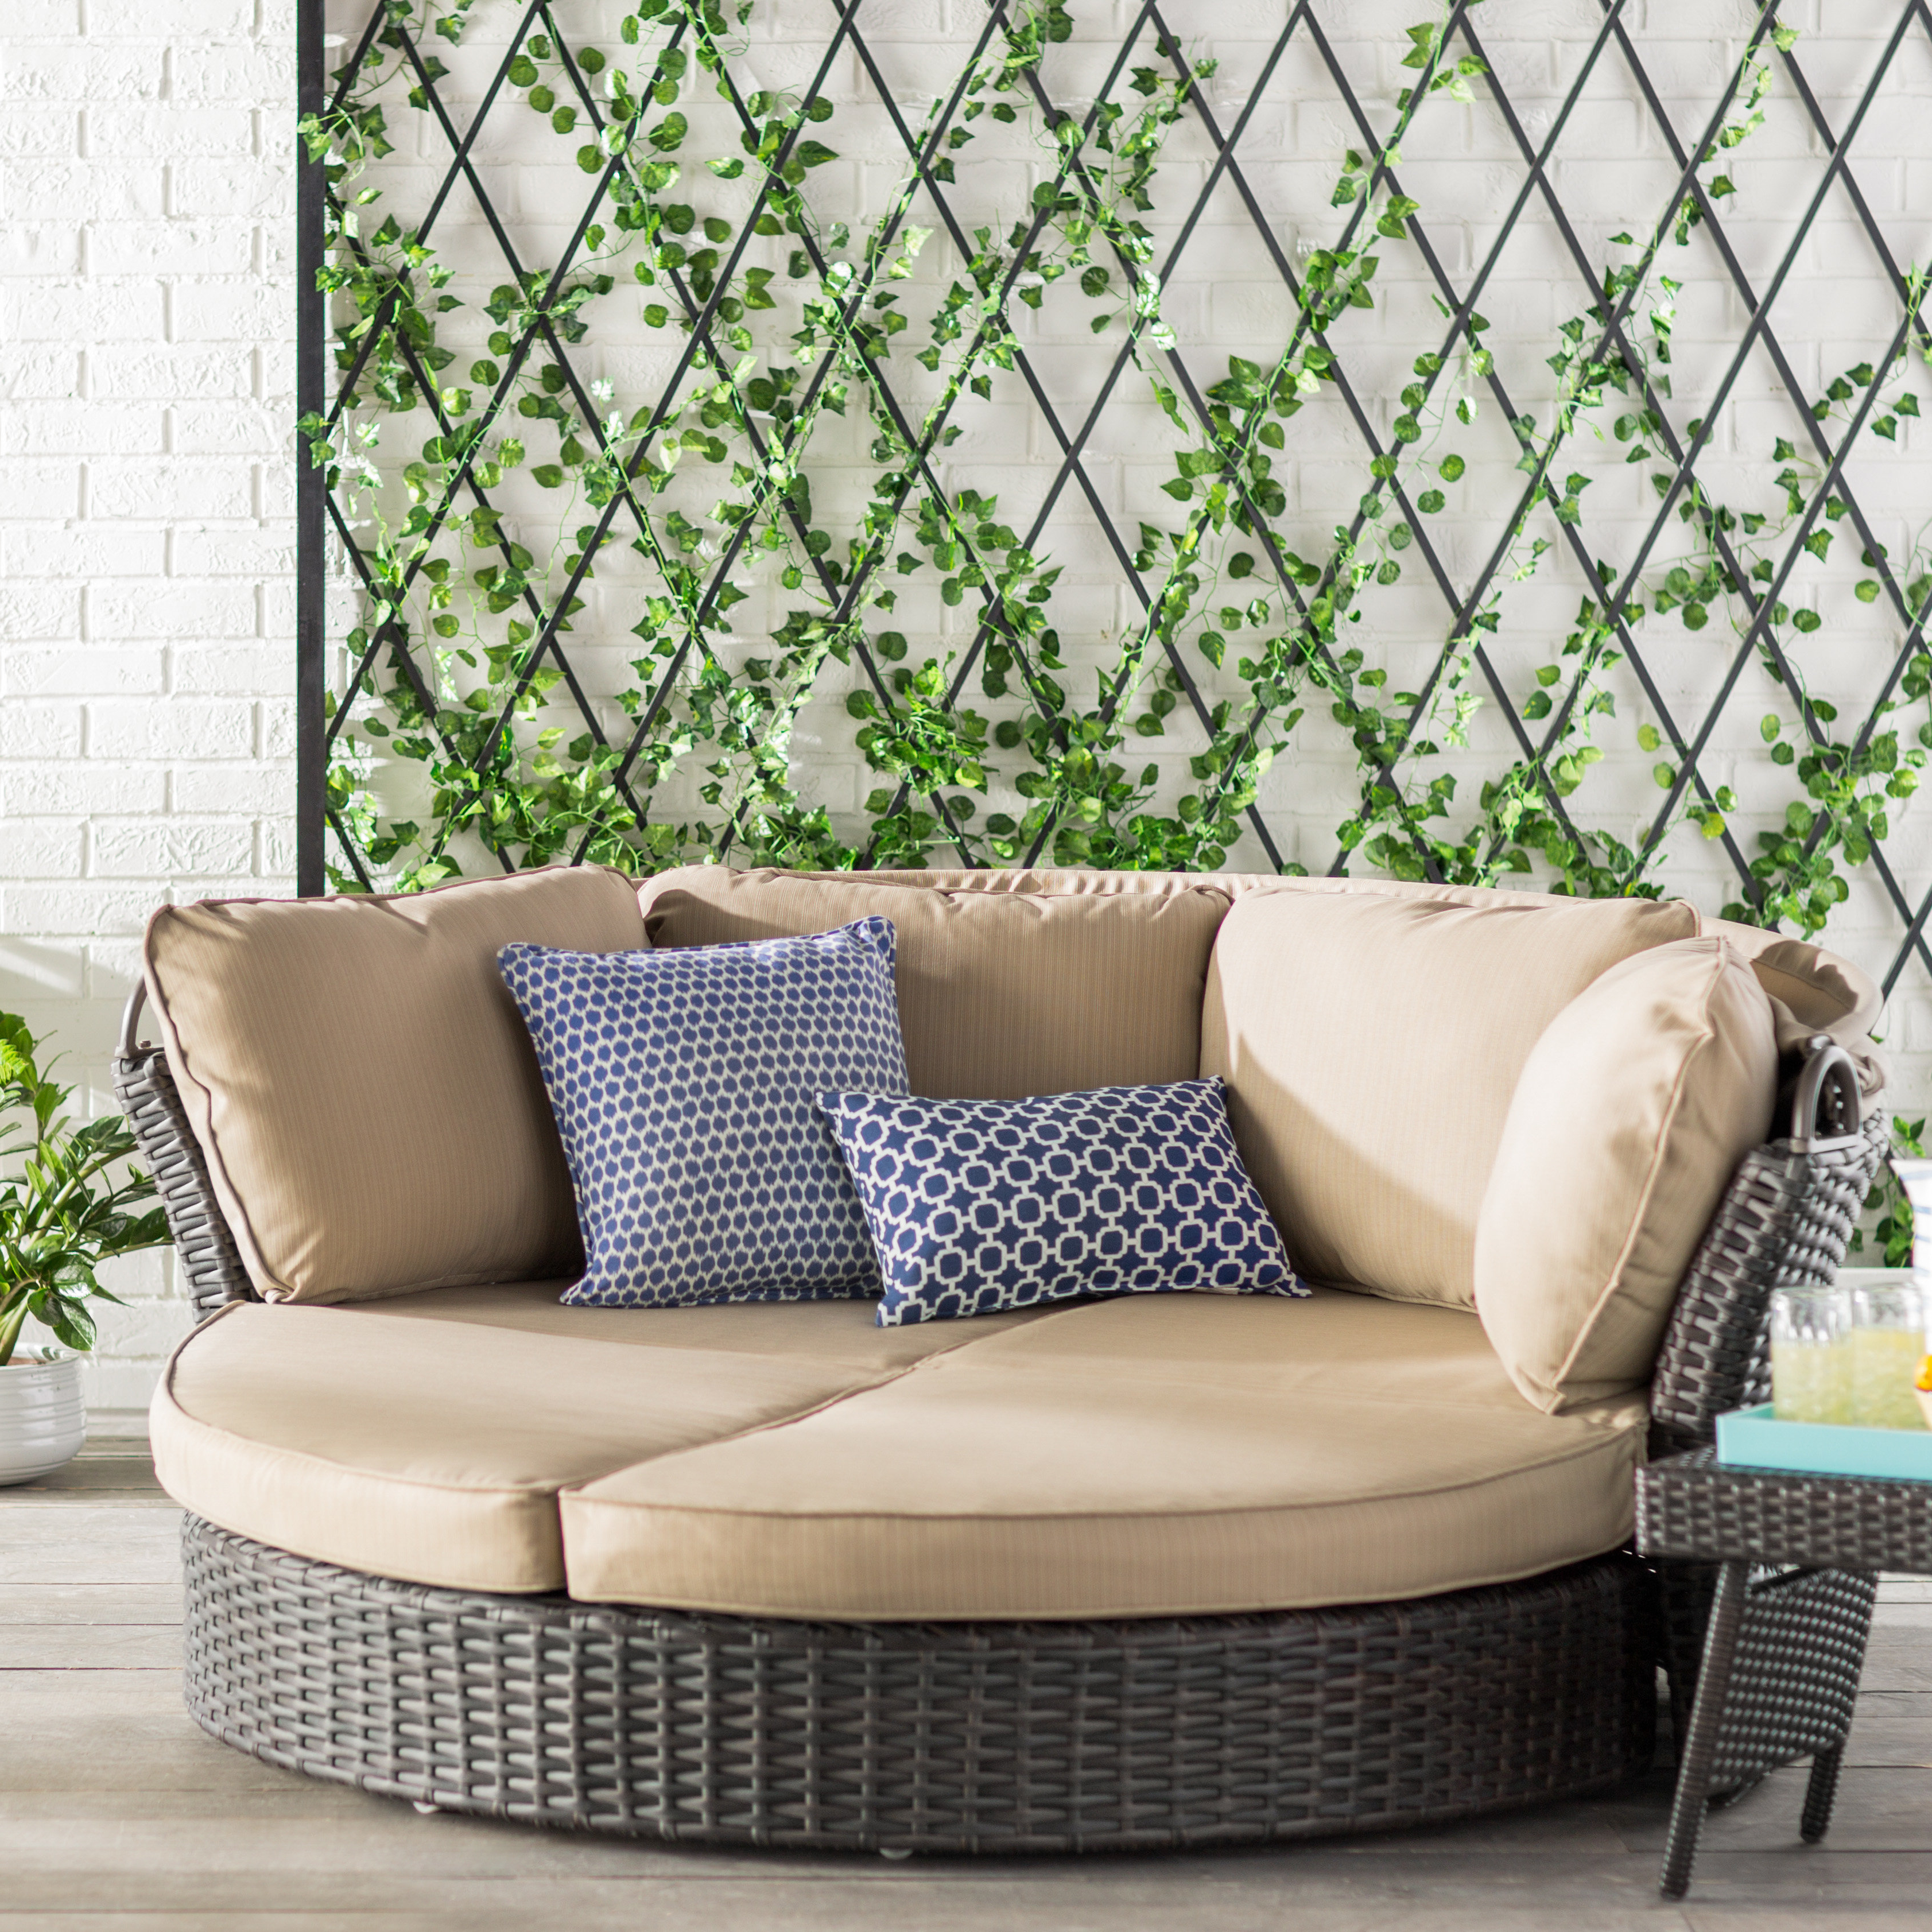 Allmodern With Famous Aubrie Patio Daybeds With Cushions (View 5 of 25)